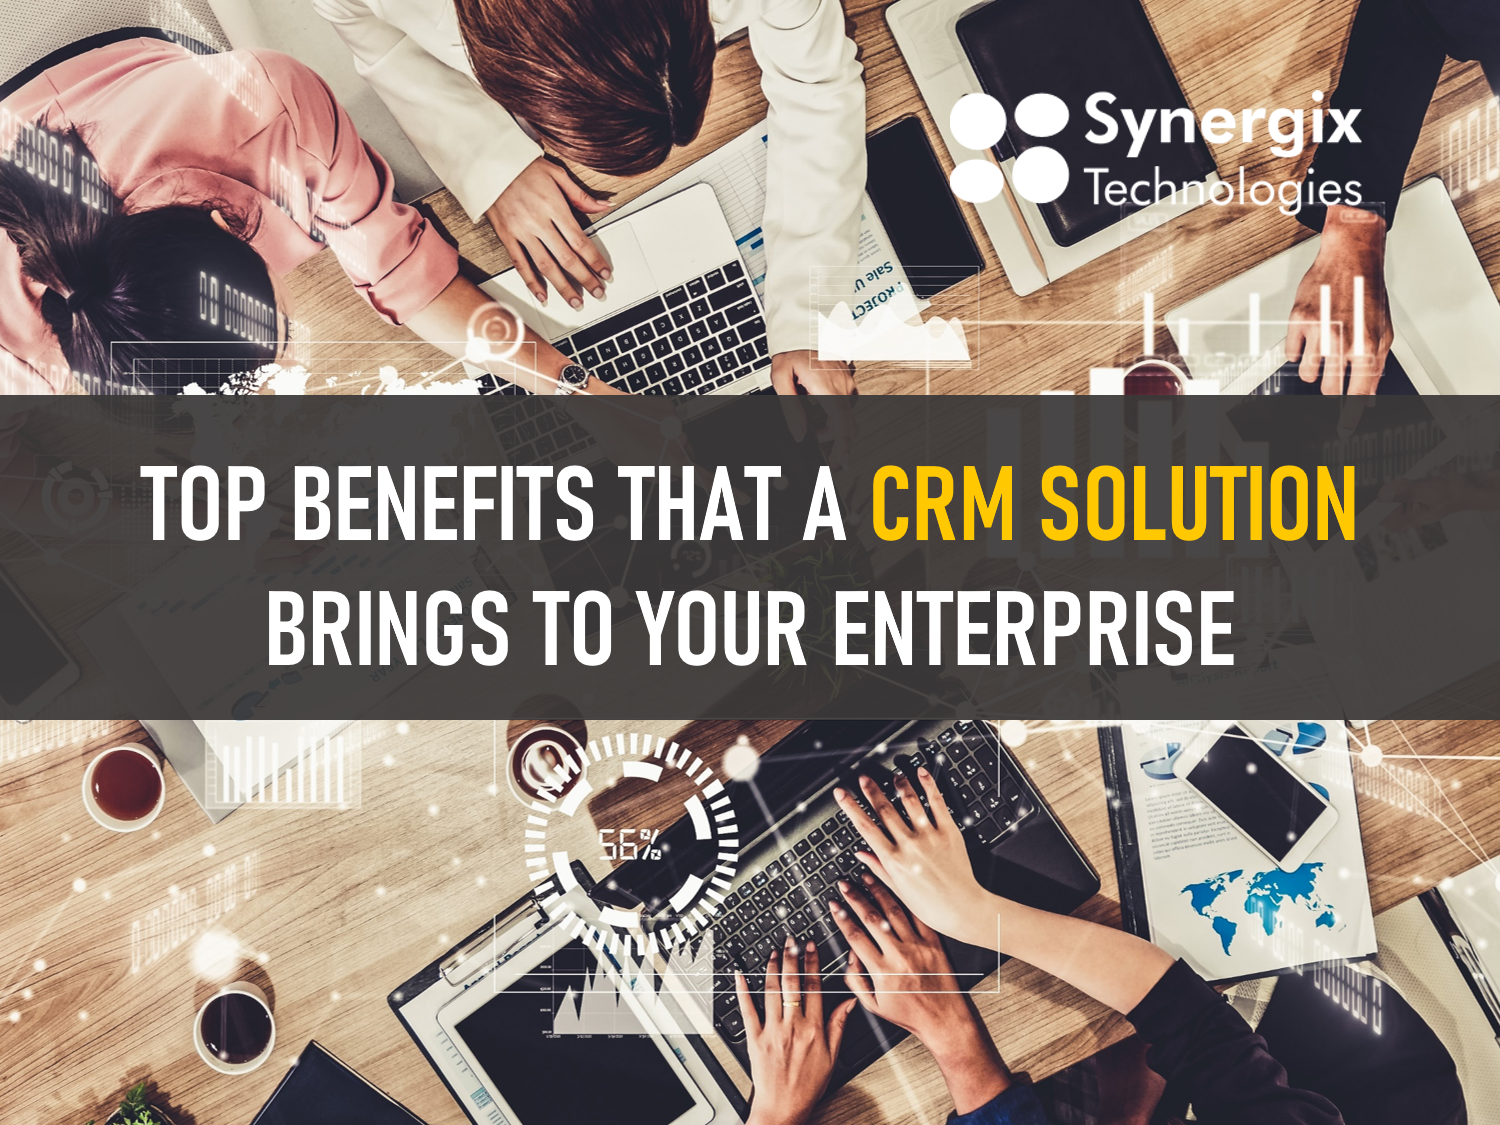 Top benefits that a CRM solution brings to your enterprise